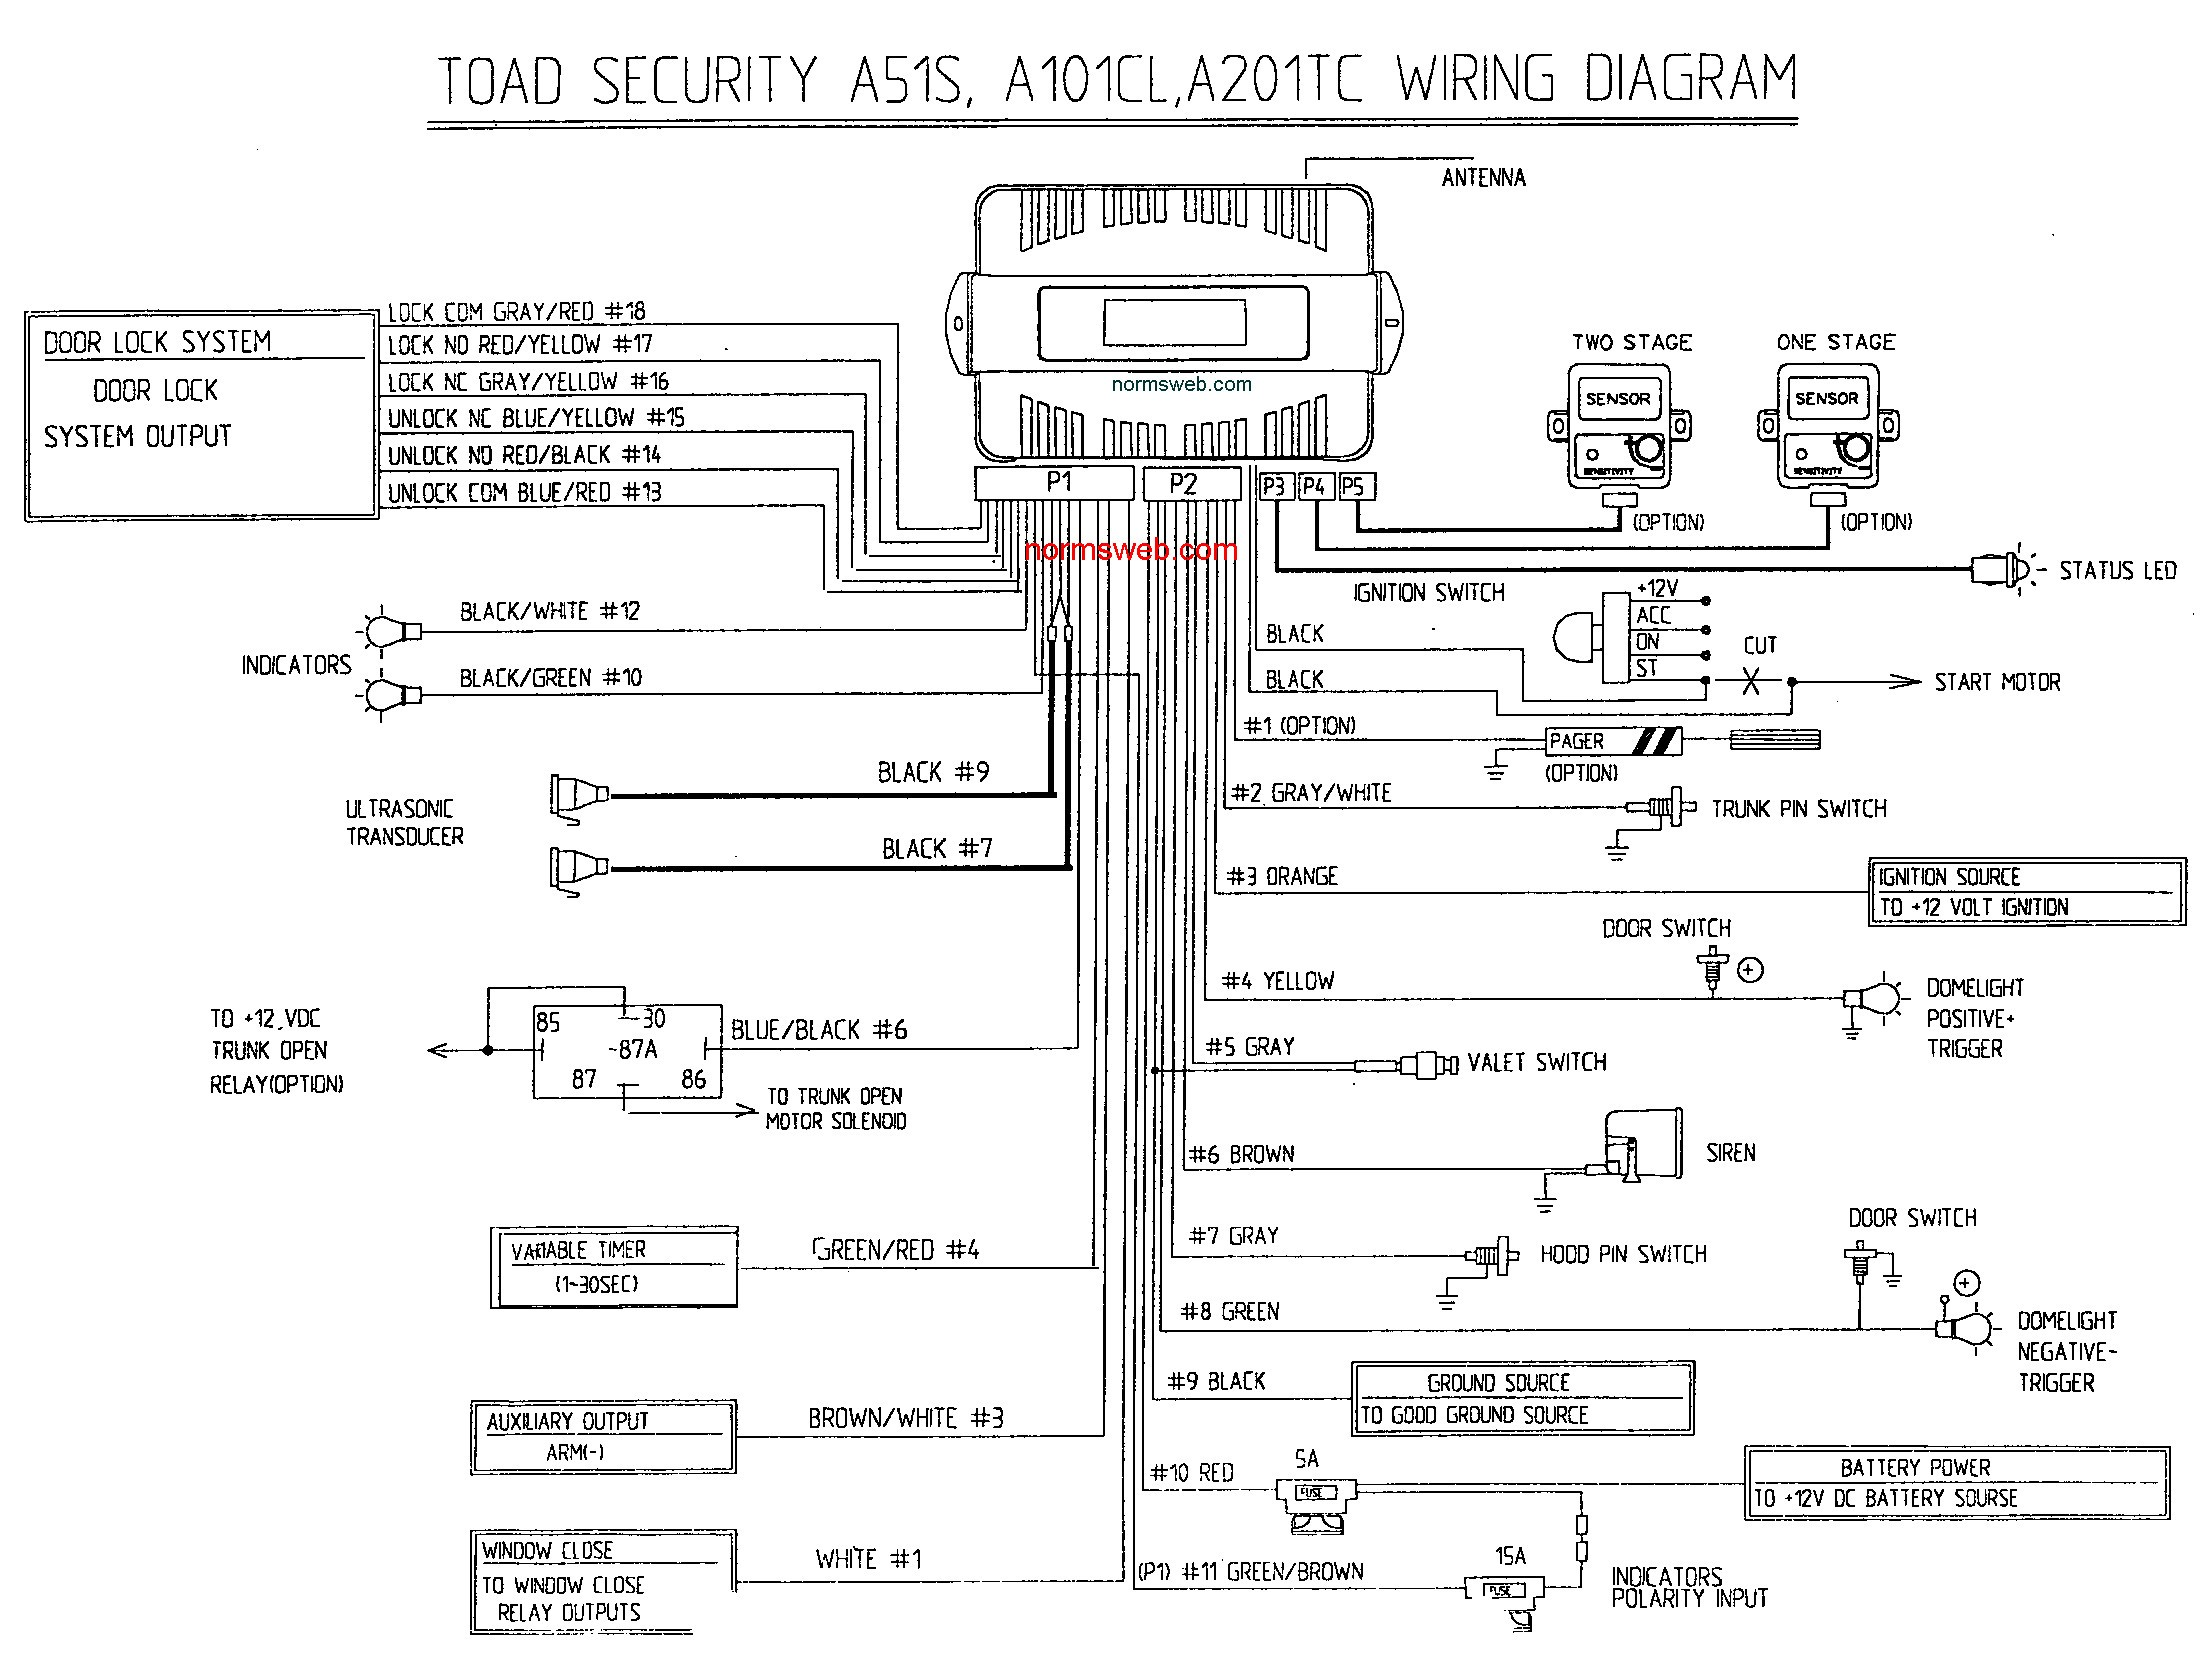 Viper 791xv Wiring Guide Diagram Base Website Wiring Guide -  AVENNDIAGRAM.BISTROTPAPILLON.FRDiagram Base Website Full Edition - bistrotpapillon